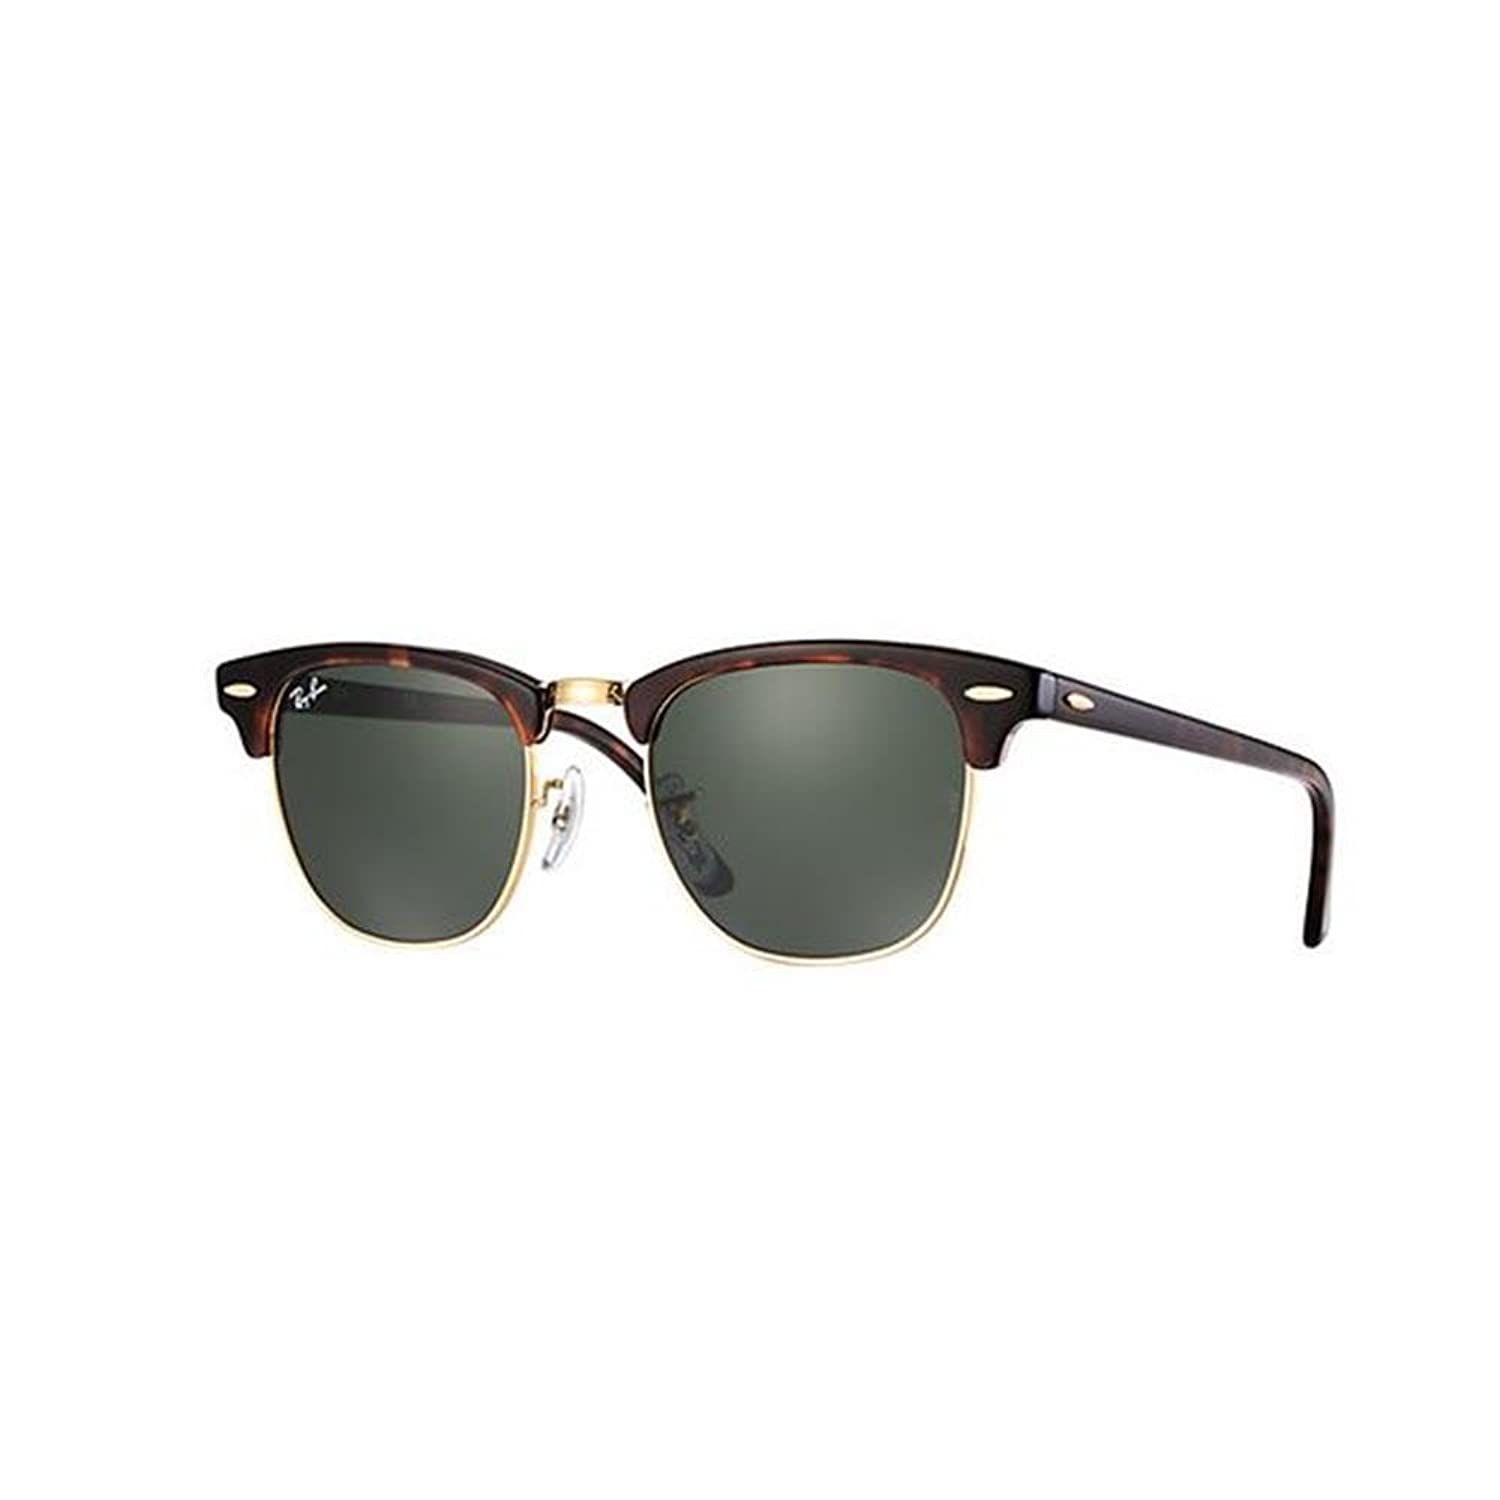 cheap ray ban glasses frames australia  amazon: ray ban clubmaster mock tortoise/ arista frame crystal green lenses 49mm non polarized: ray ban: clothing